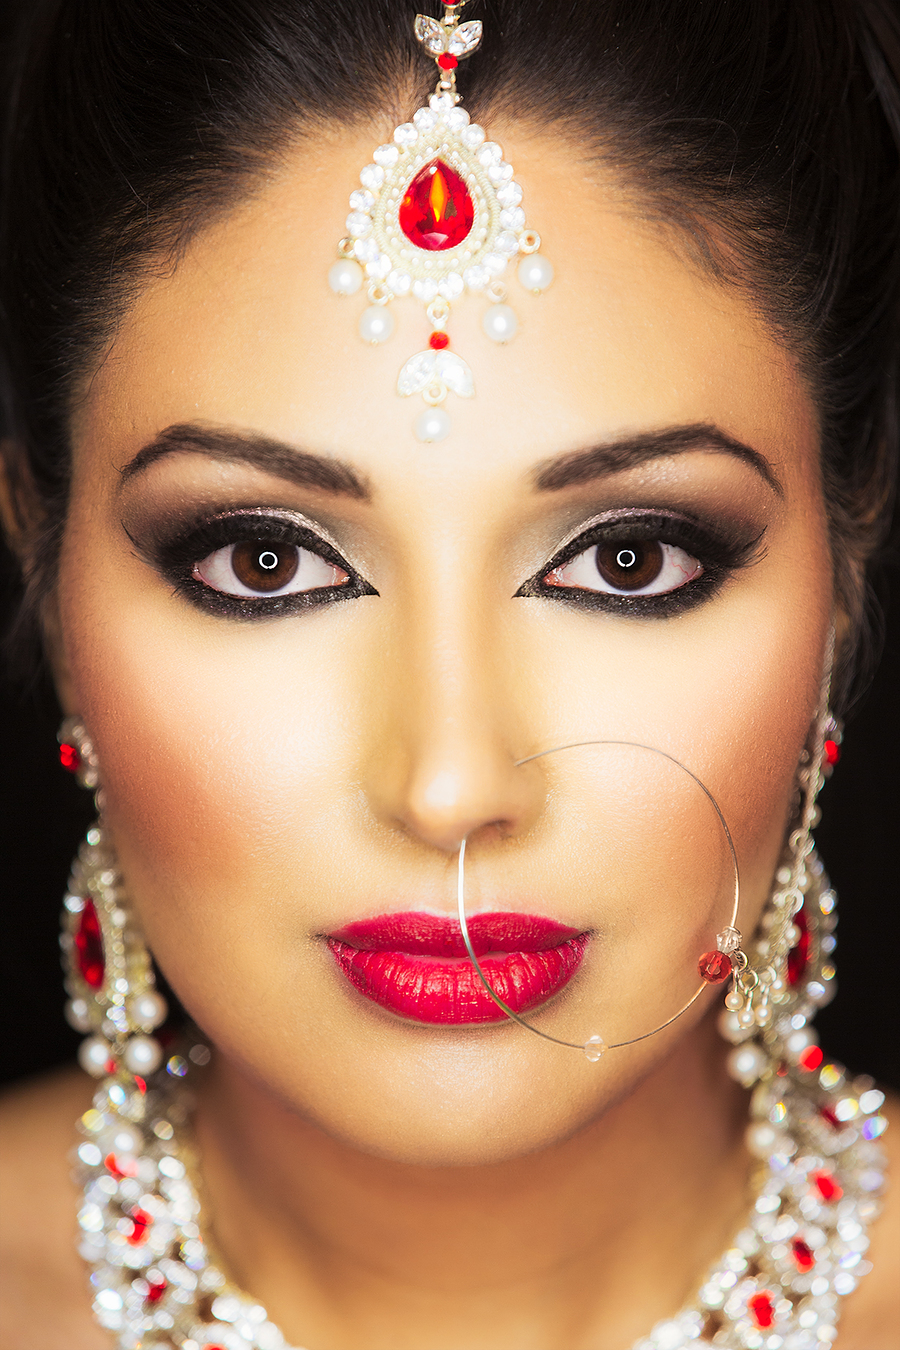 Asian Bridal makeup / Photography by jakabi / Uploaded 4th March 2016 @ 11:51 PM